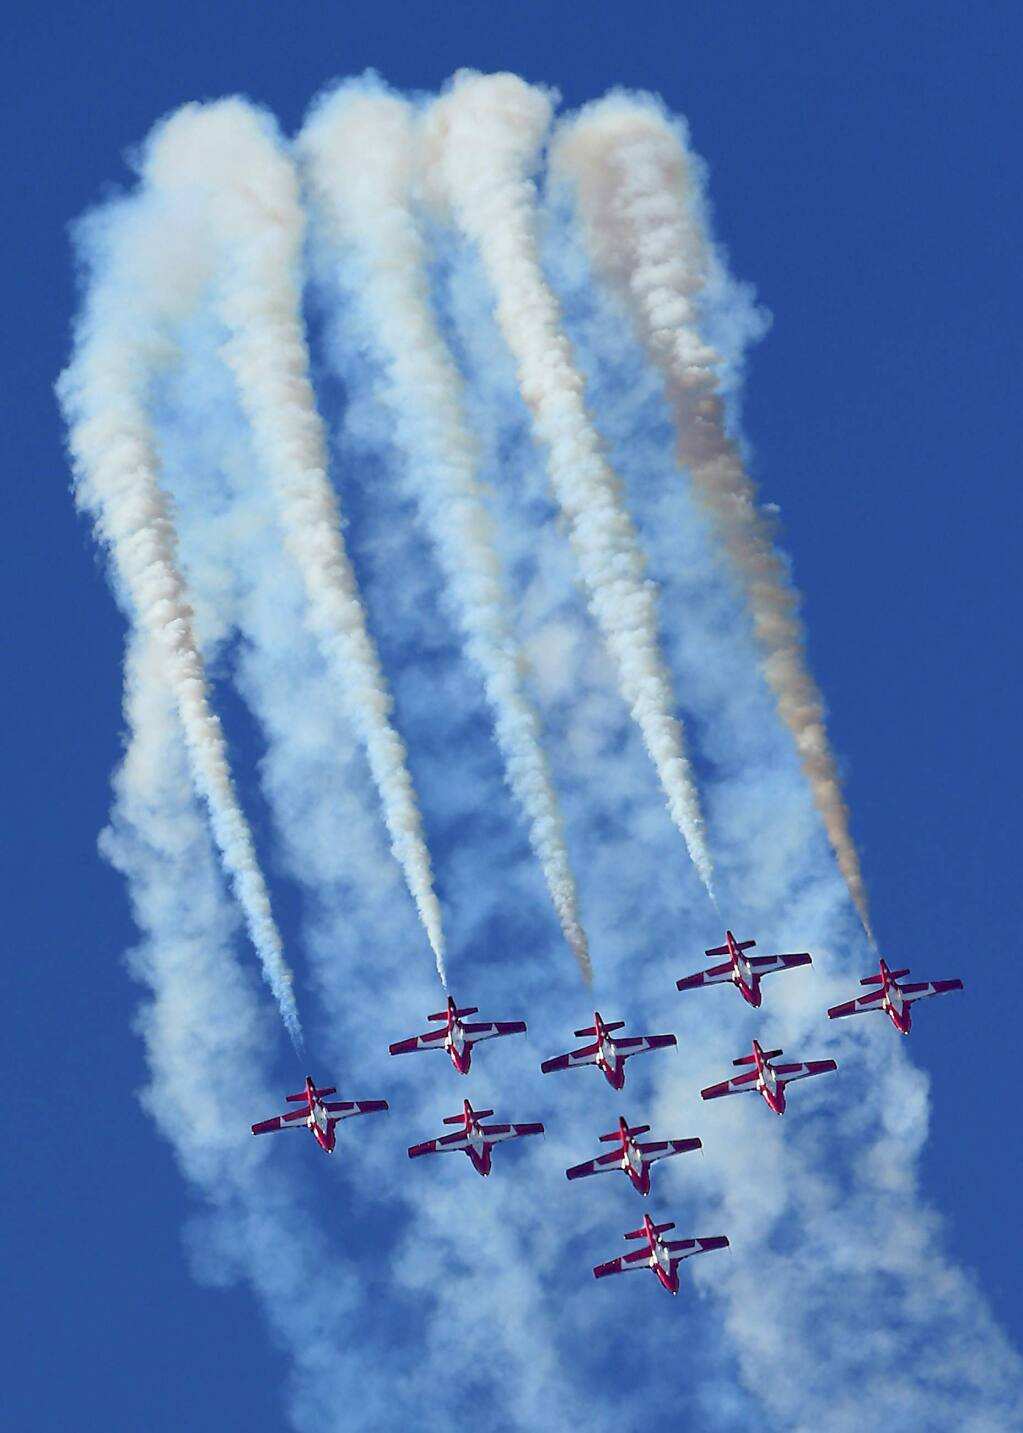 The Canadian Forces Snowbirds in formation for the finale at the Wings Over Wine County Airshow 2015 at the Charles M. Schulz Sonoma County Airport on Saturday. (JOHN BURGESS / The Press Democrat)